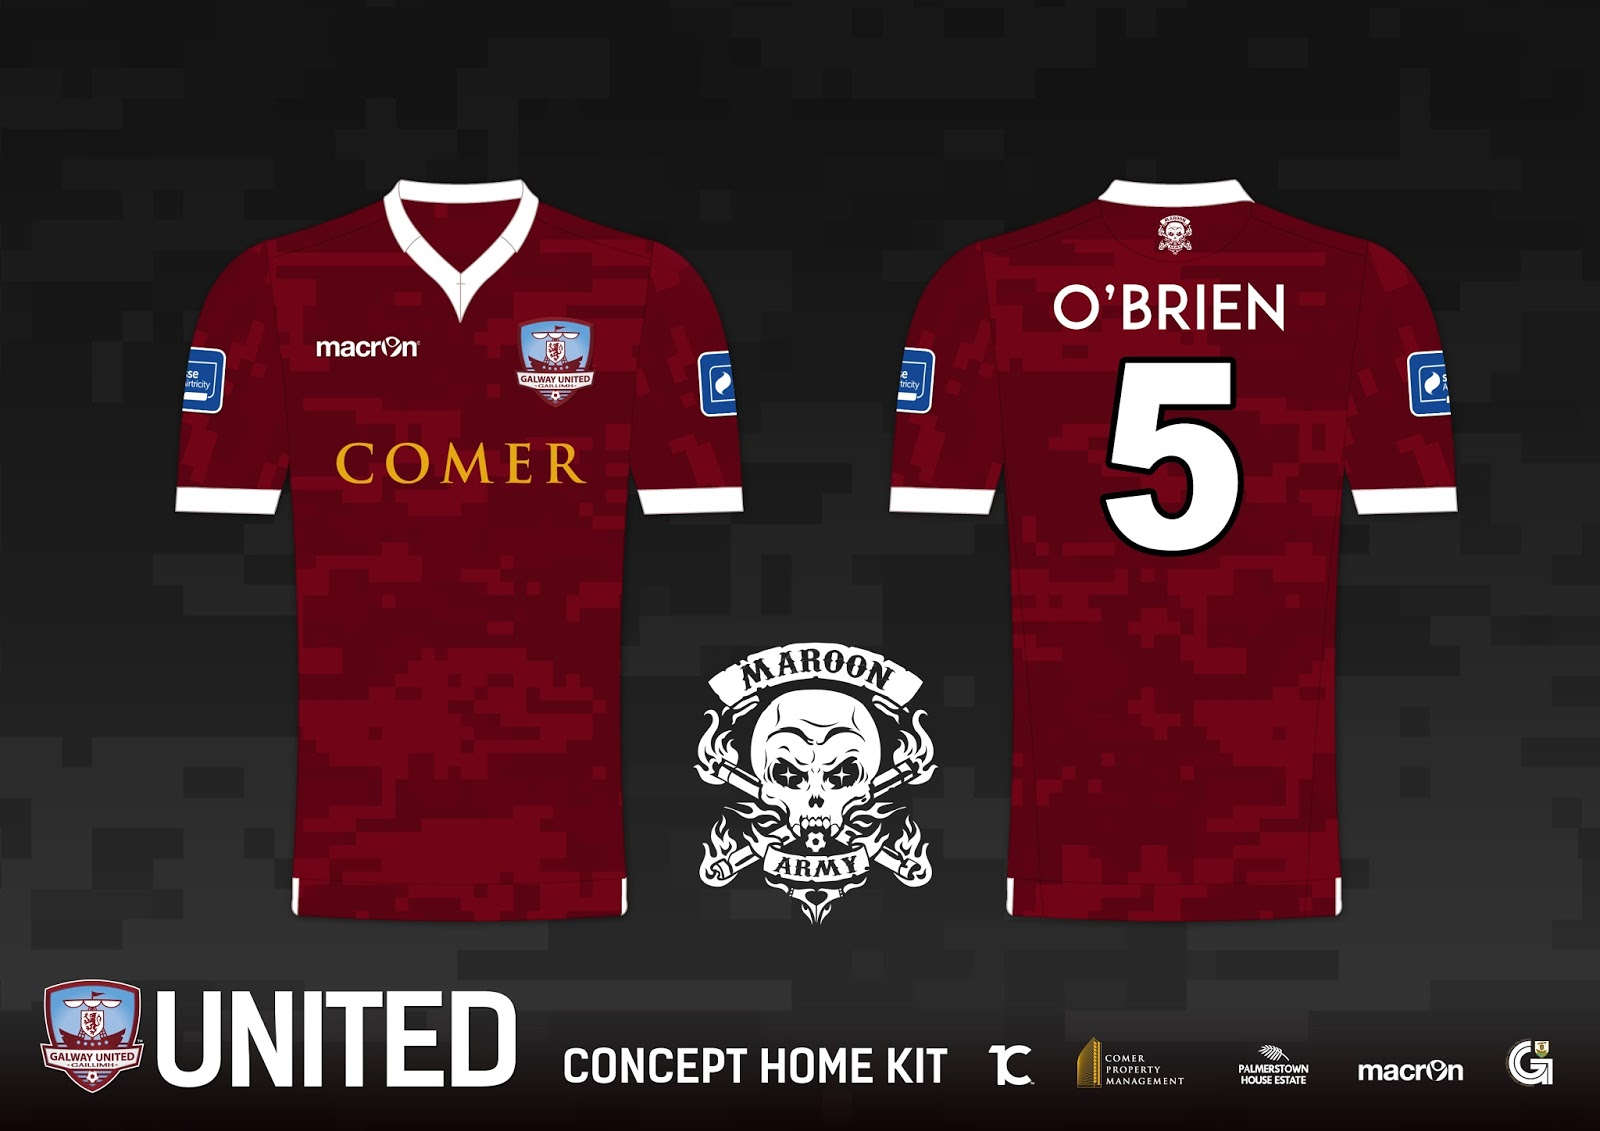 galway united fc maroon army home kit concept